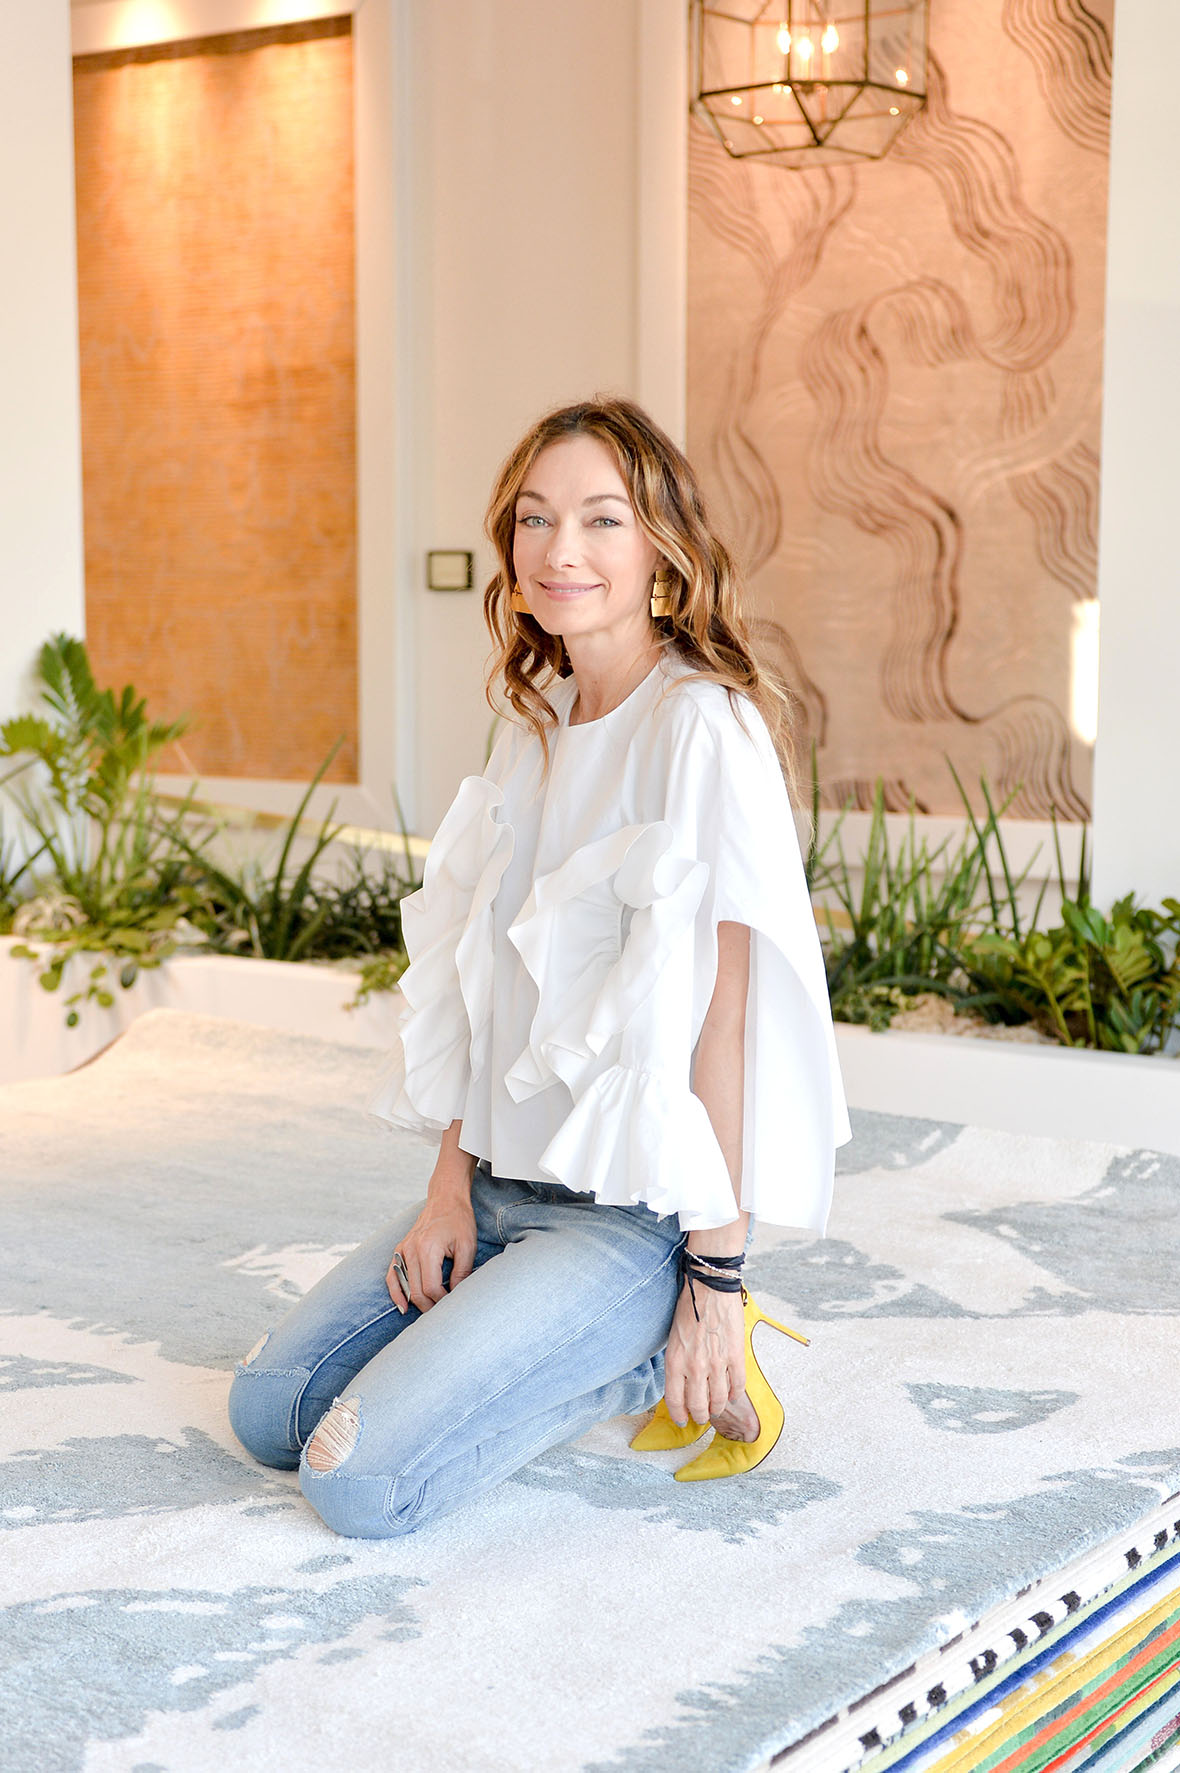 An interview with kelly wearstler for the rug company Kelly wearstler bio